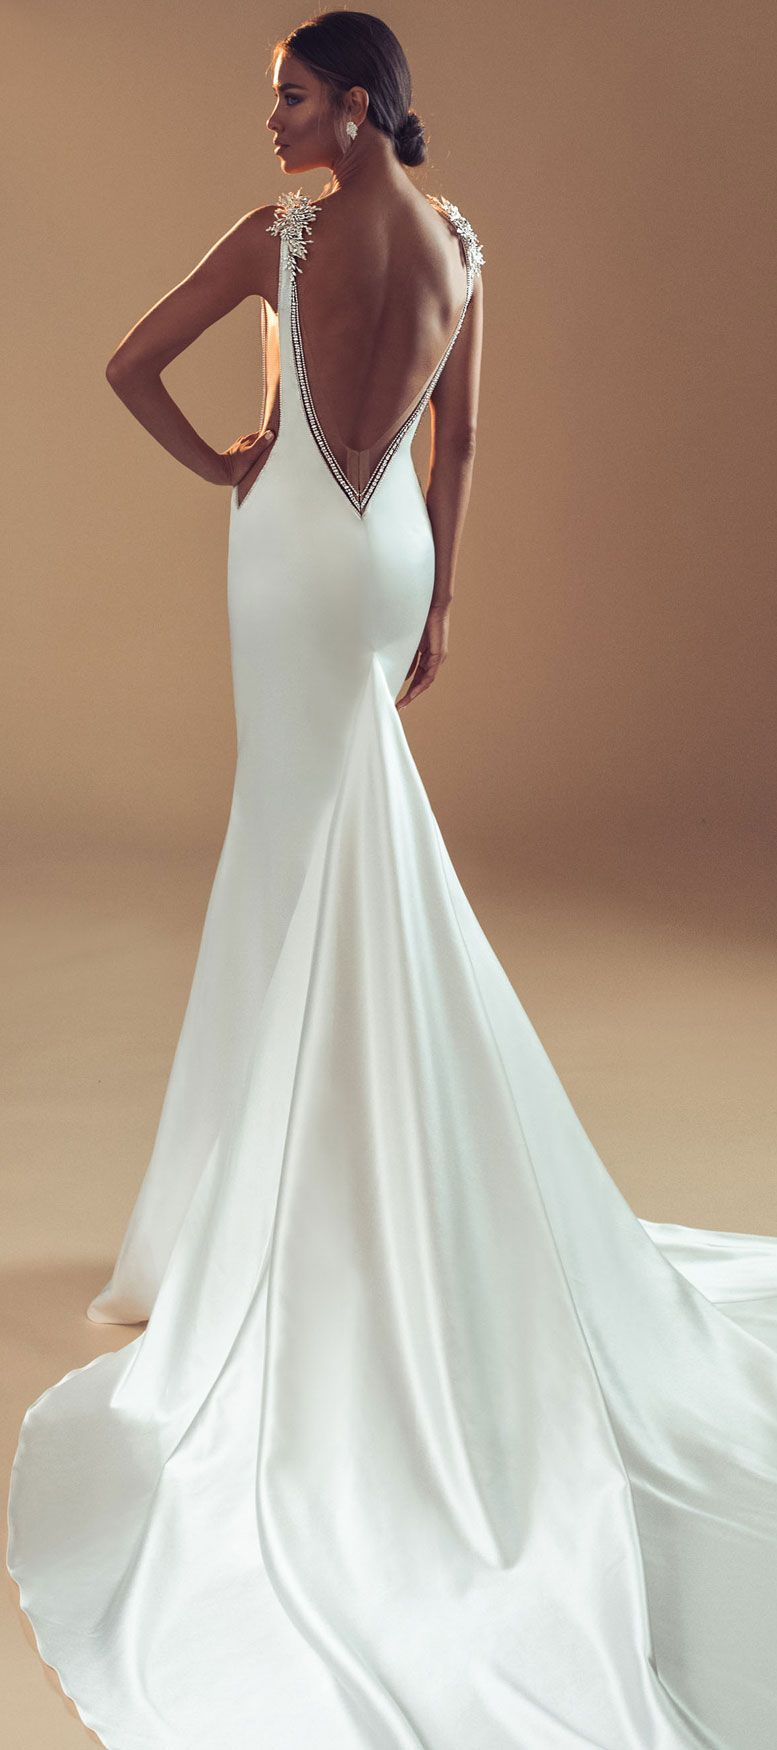 79 beautiful simple wedding gowns that will leave you